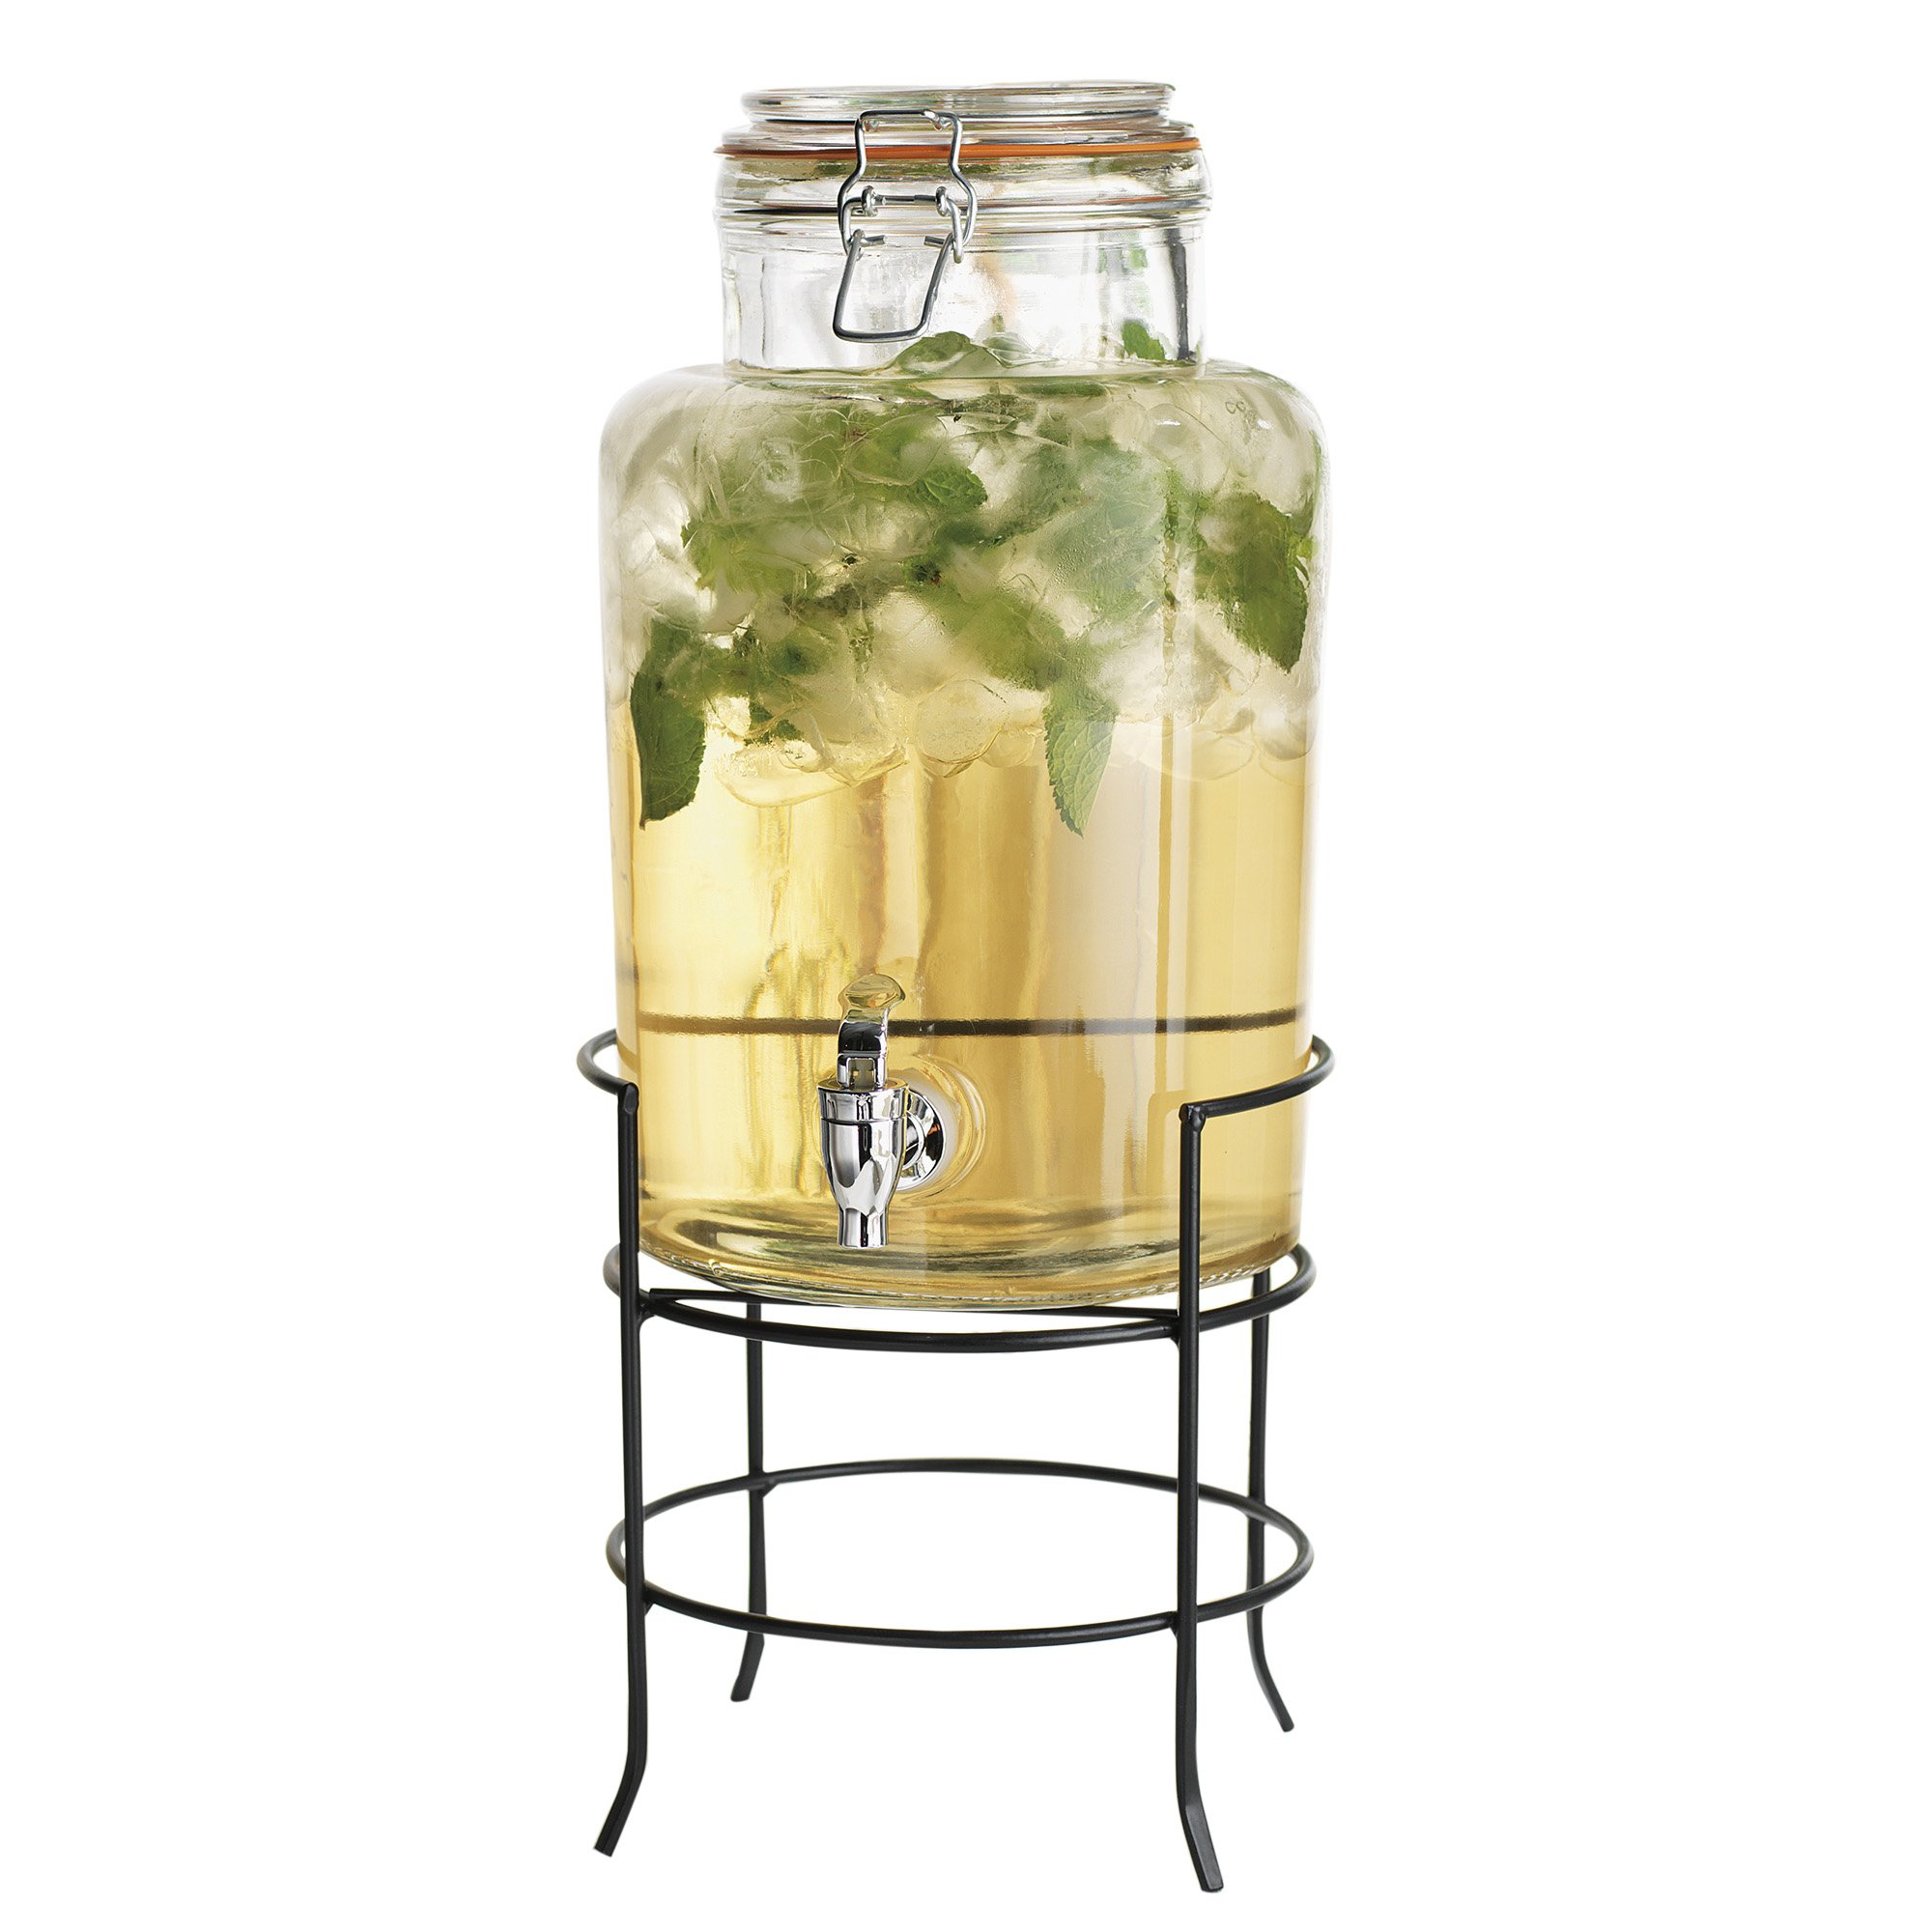 Elegant Home Beverage Drink Dispenser Durable Glass on Stand 1.5 Gallon with Spigot Includes Flavor Capsule infuser